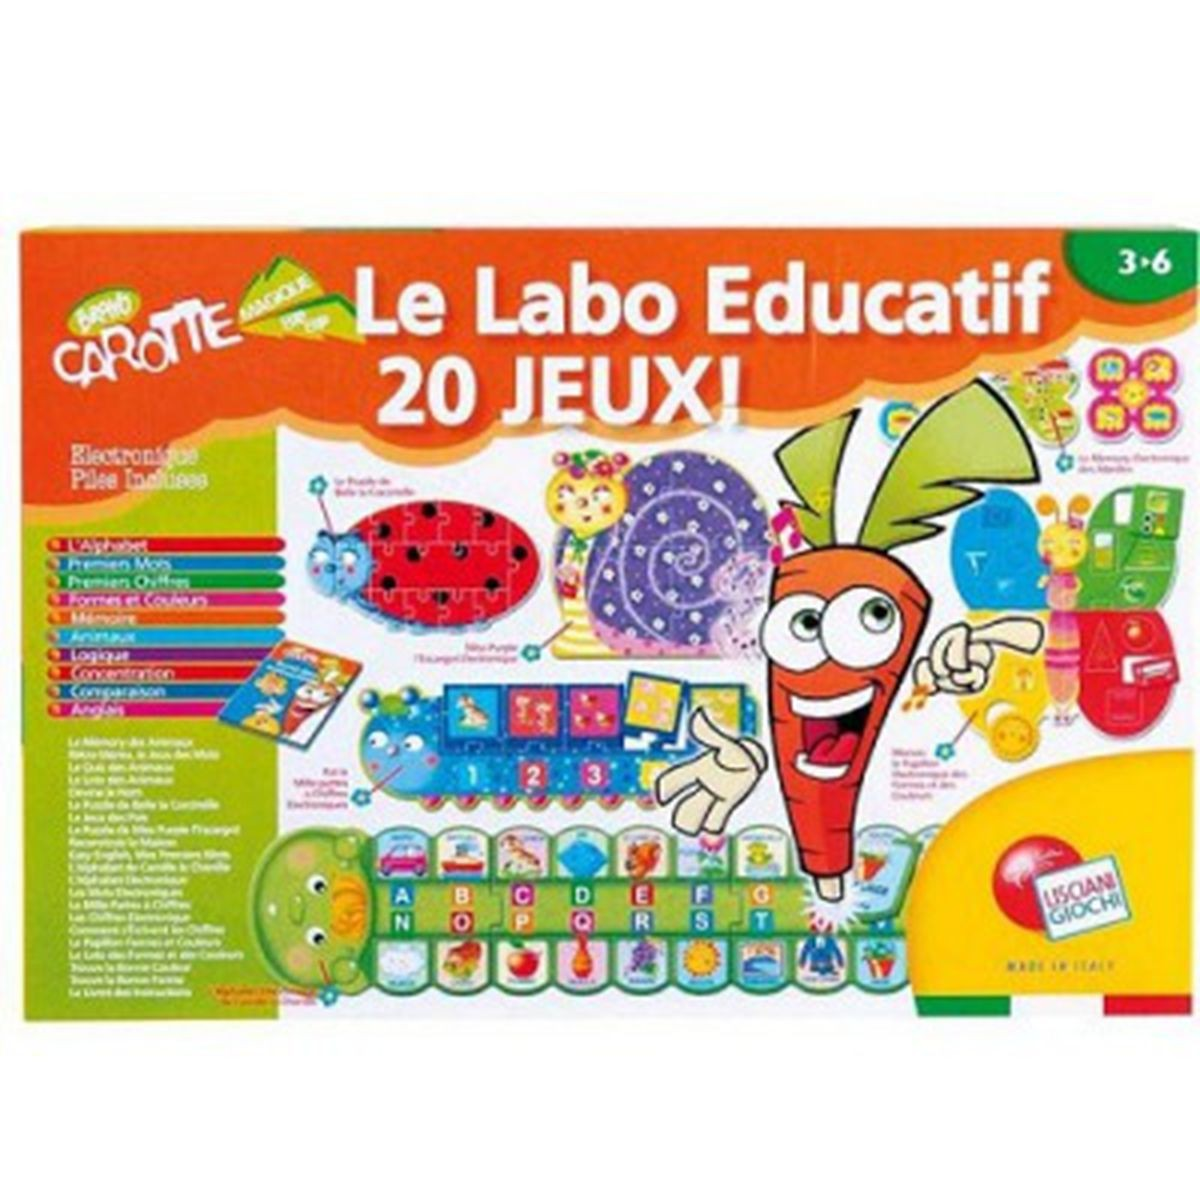 le labo educatif